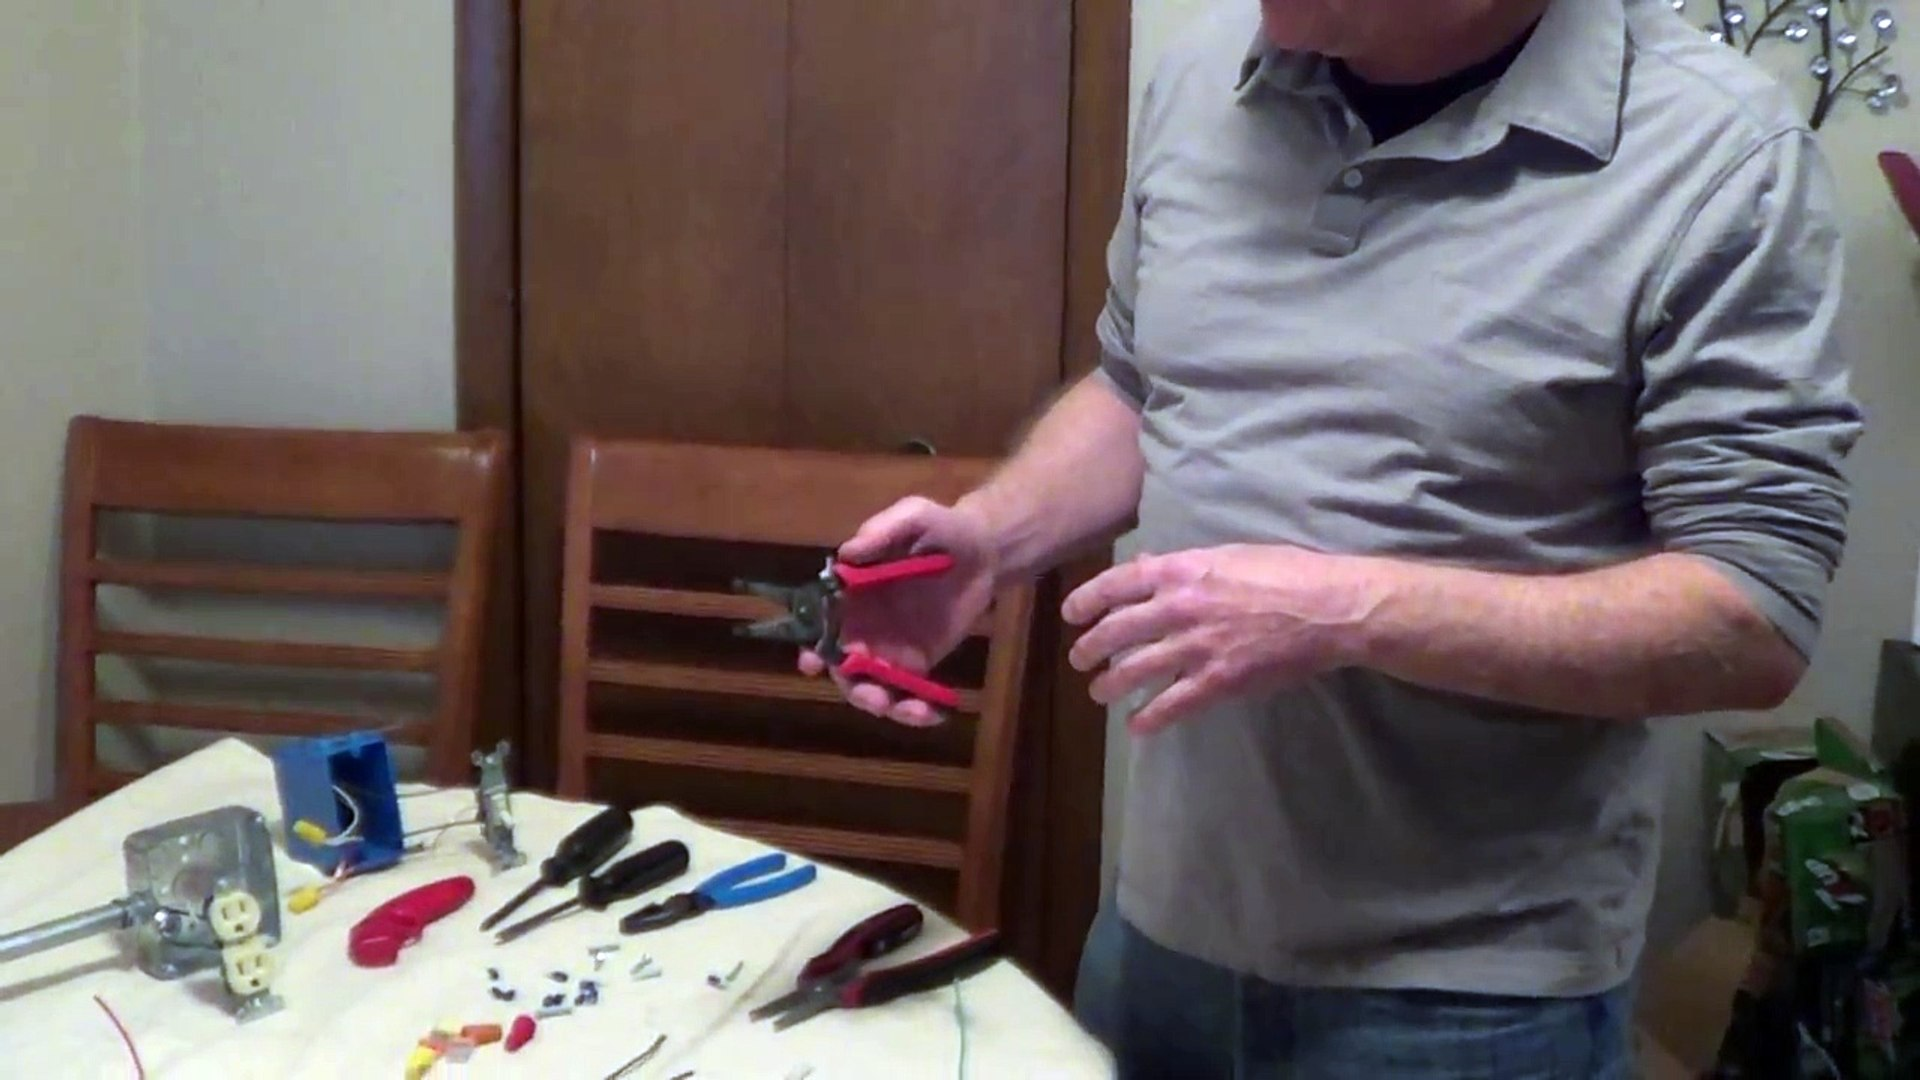 Wire Strippers - How to Use Wire Strippers